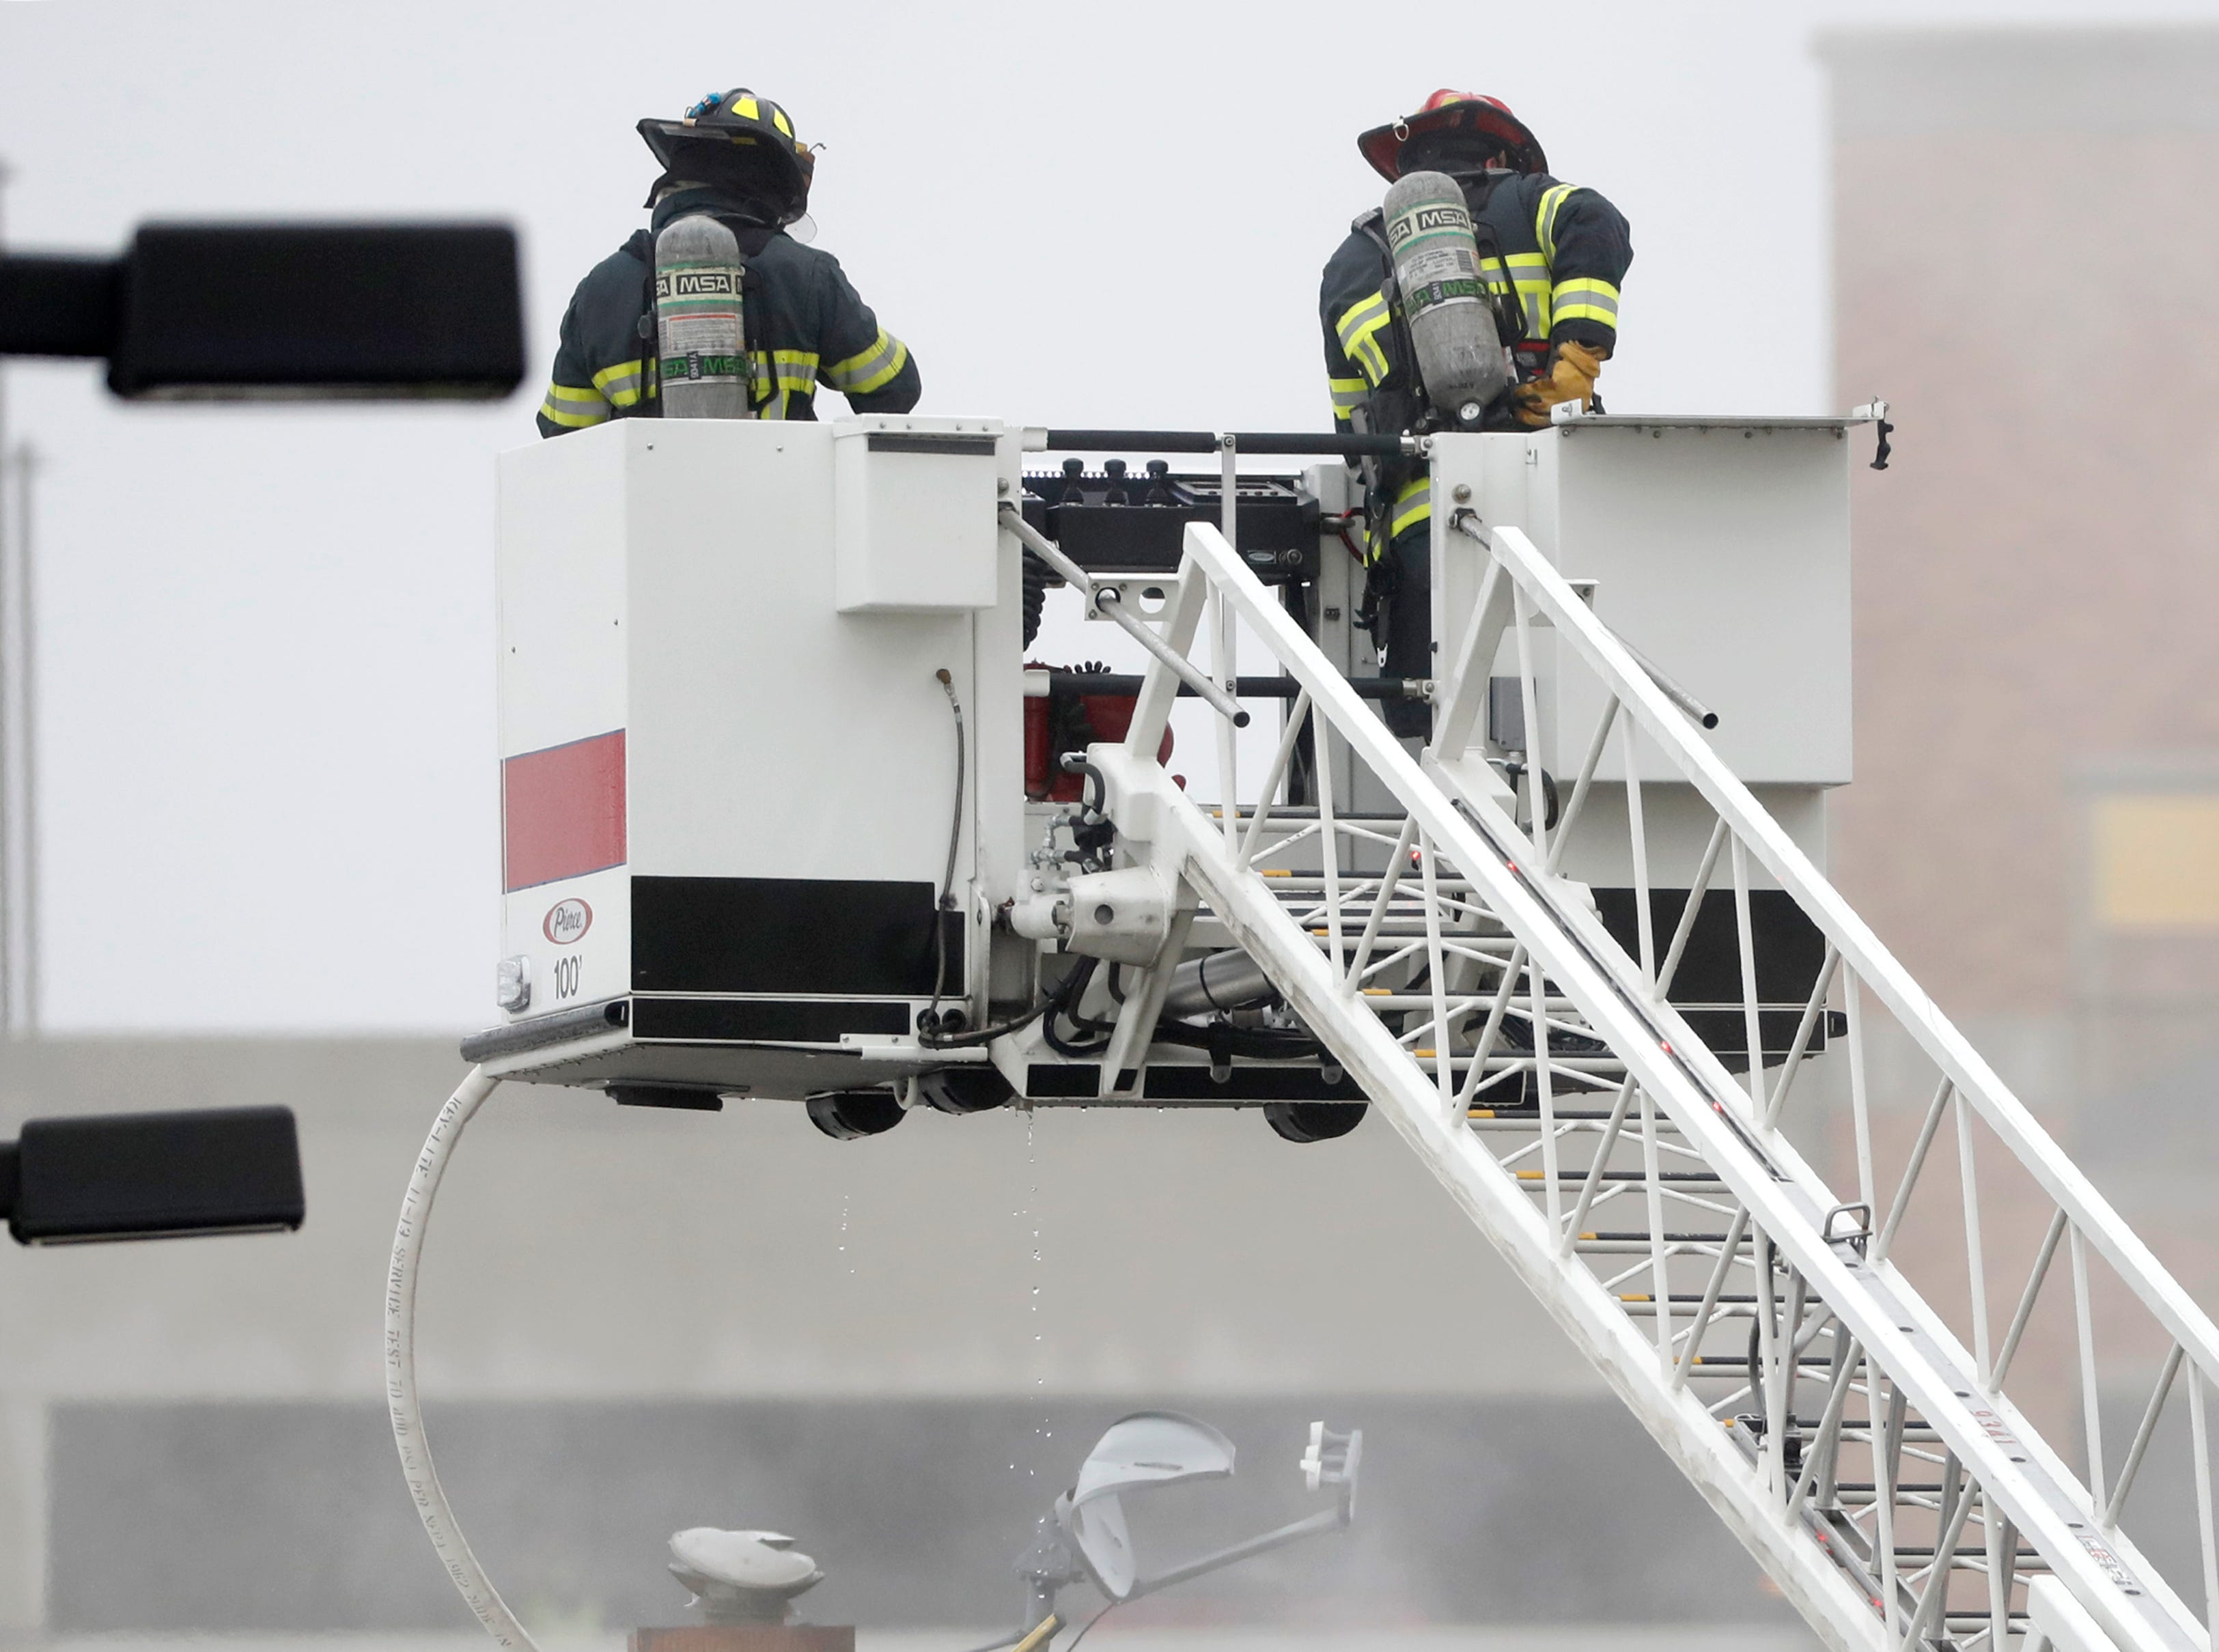 Firefighters continue to work the scene of a fire in the building that houses Author's Kitchen and Bar from the roof of Apollon in downtown Appleton on the corner of West Washington and North Appleton Streets Wednesday, March 13, 2019, in Appleton, Wis. Danny Damiani/USA TODAY NETWORK-Wisconsin